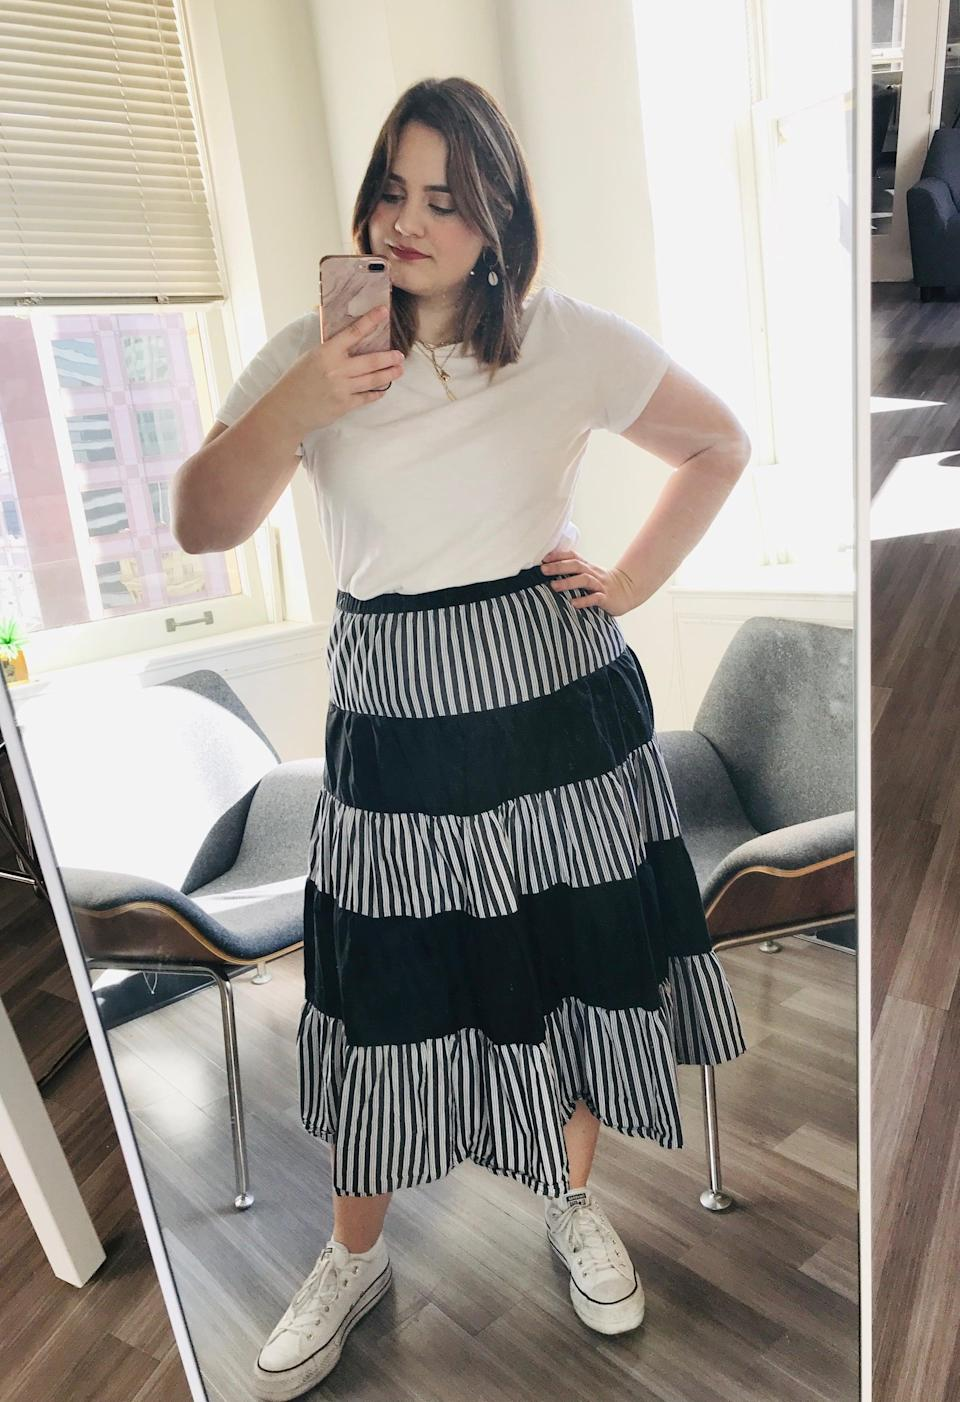 """<p><strong>The item:</strong> <span>Old Navy EveryWear Slub-Knit Tee</span> ($8) </p><p><strong>What our editor said:</strong> """"I picked up this shirt on a whim, and now I want to buy, like, five more. . . . It looks great with jeans, skirts, trousers - you name it.</p> <p>""""This top comes in sizes XS-XXL and types regular, tall, and petite. For reference, I am wearing the regular large, and it fits true to size. The design is tag-free, so there's no annoying itchiness at your neck or side. The fabric is soft and relaxed, but not flimsy or thin. I have washed my t-shirt three times now and it remains in great condition. Is this tee woven with magic or something?"""" - MCW </p> <p>If you want to read more, here is the <a href=""""http://www.popsugar.com/fashion/best-white-tee-for-women-47214670"""" class=""""link rapid-noclick-resp"""" rel=""""nofollow noopener"""" target=""""_blank"""" data-ylk=""""slk:complete review"""">complete review</a>.</p>"""